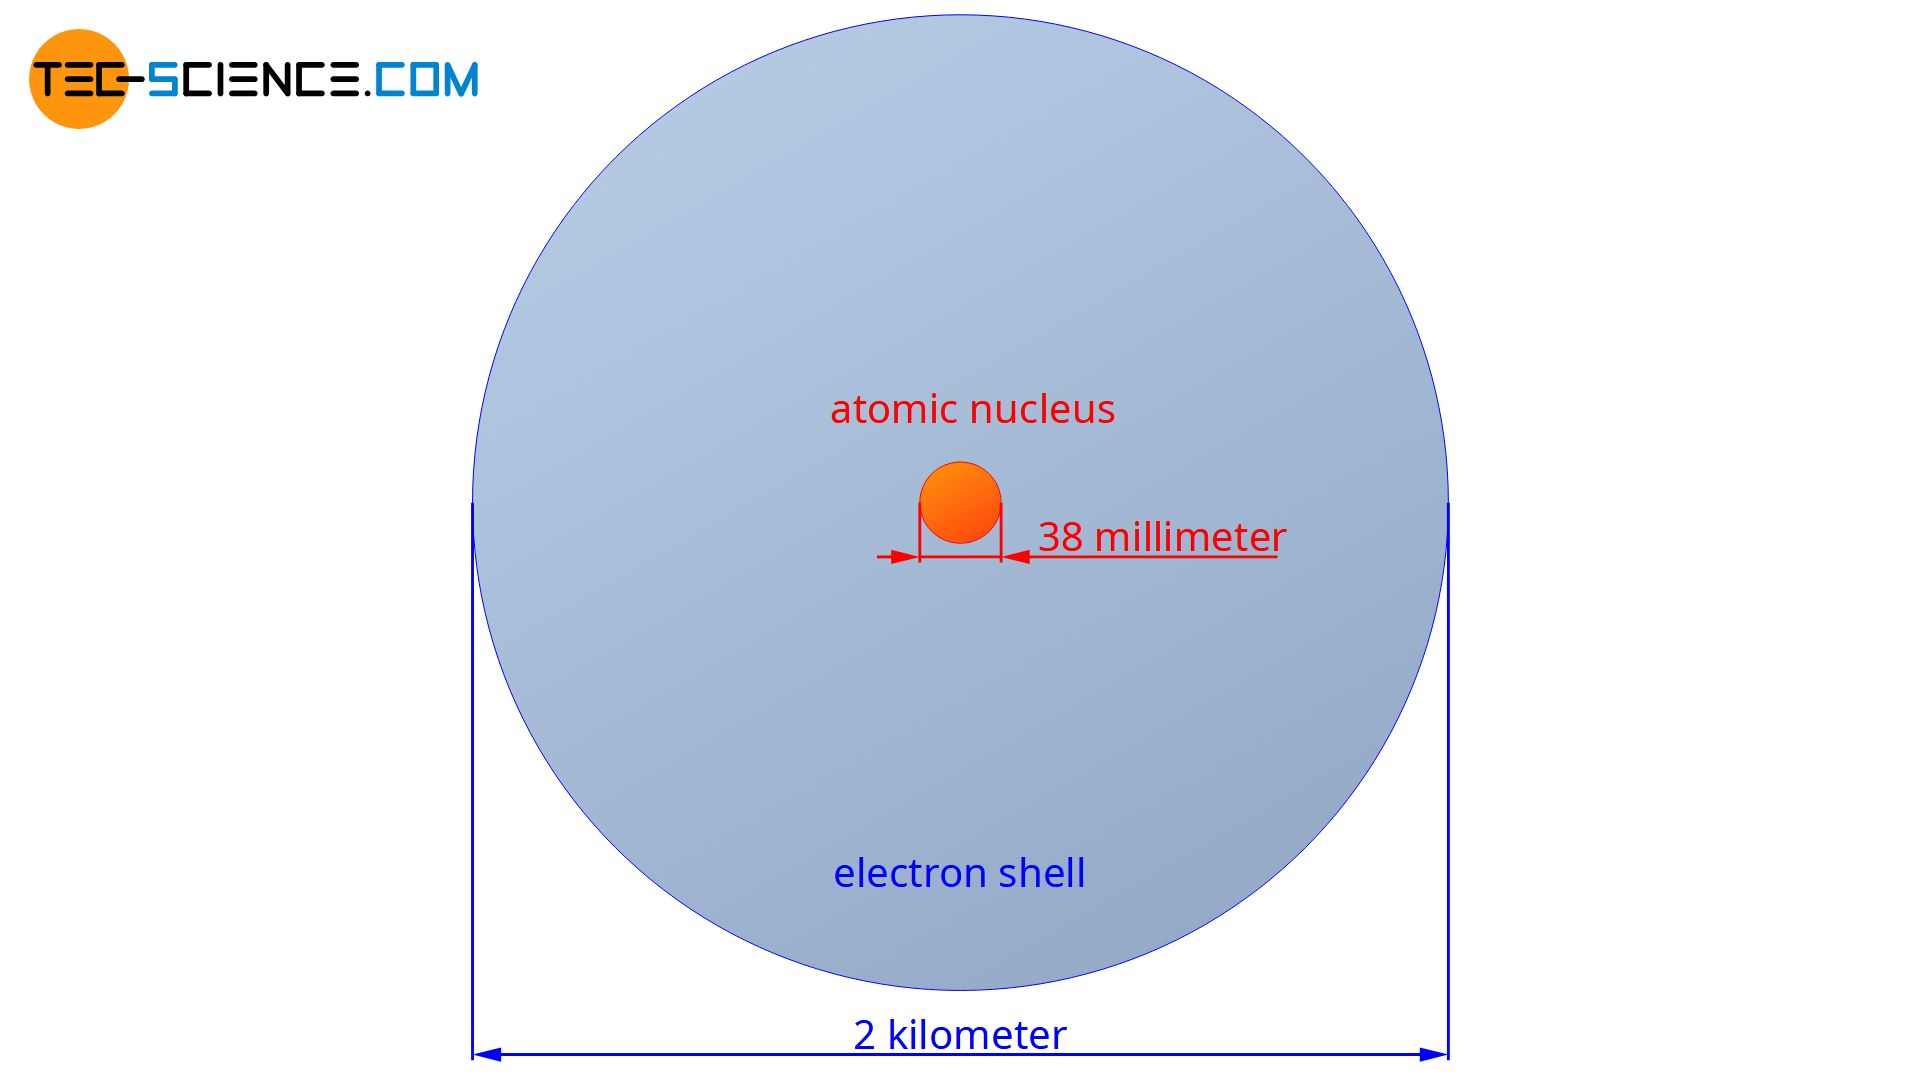 Comparison in size between an atomic nucleus and its electron shell